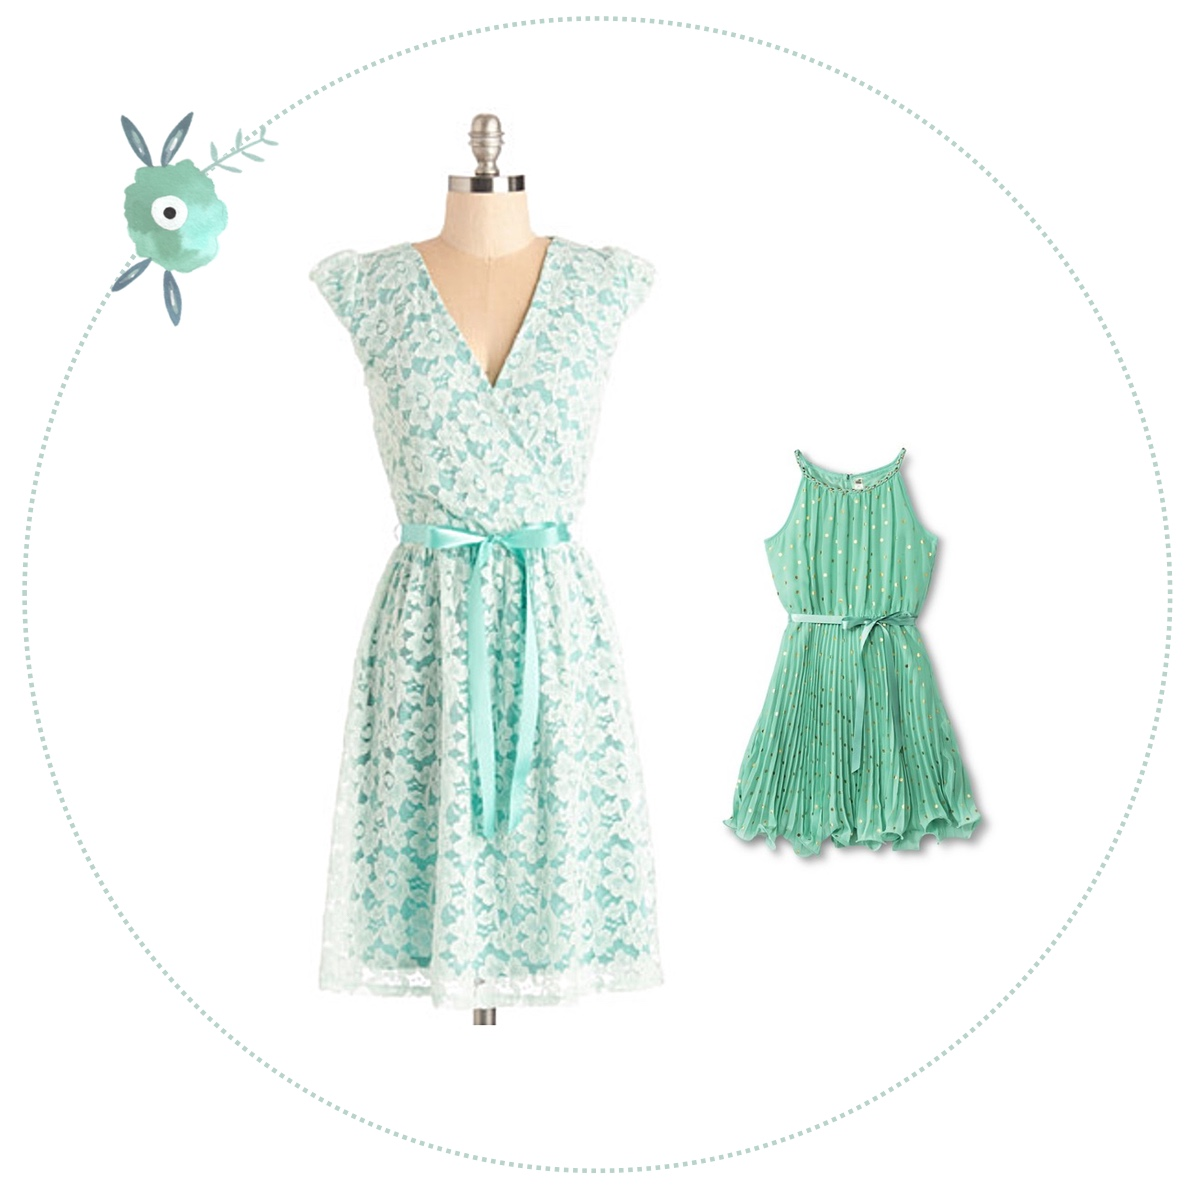 Easter dresses inspiration | Mother & daughter Easter dresses ideas